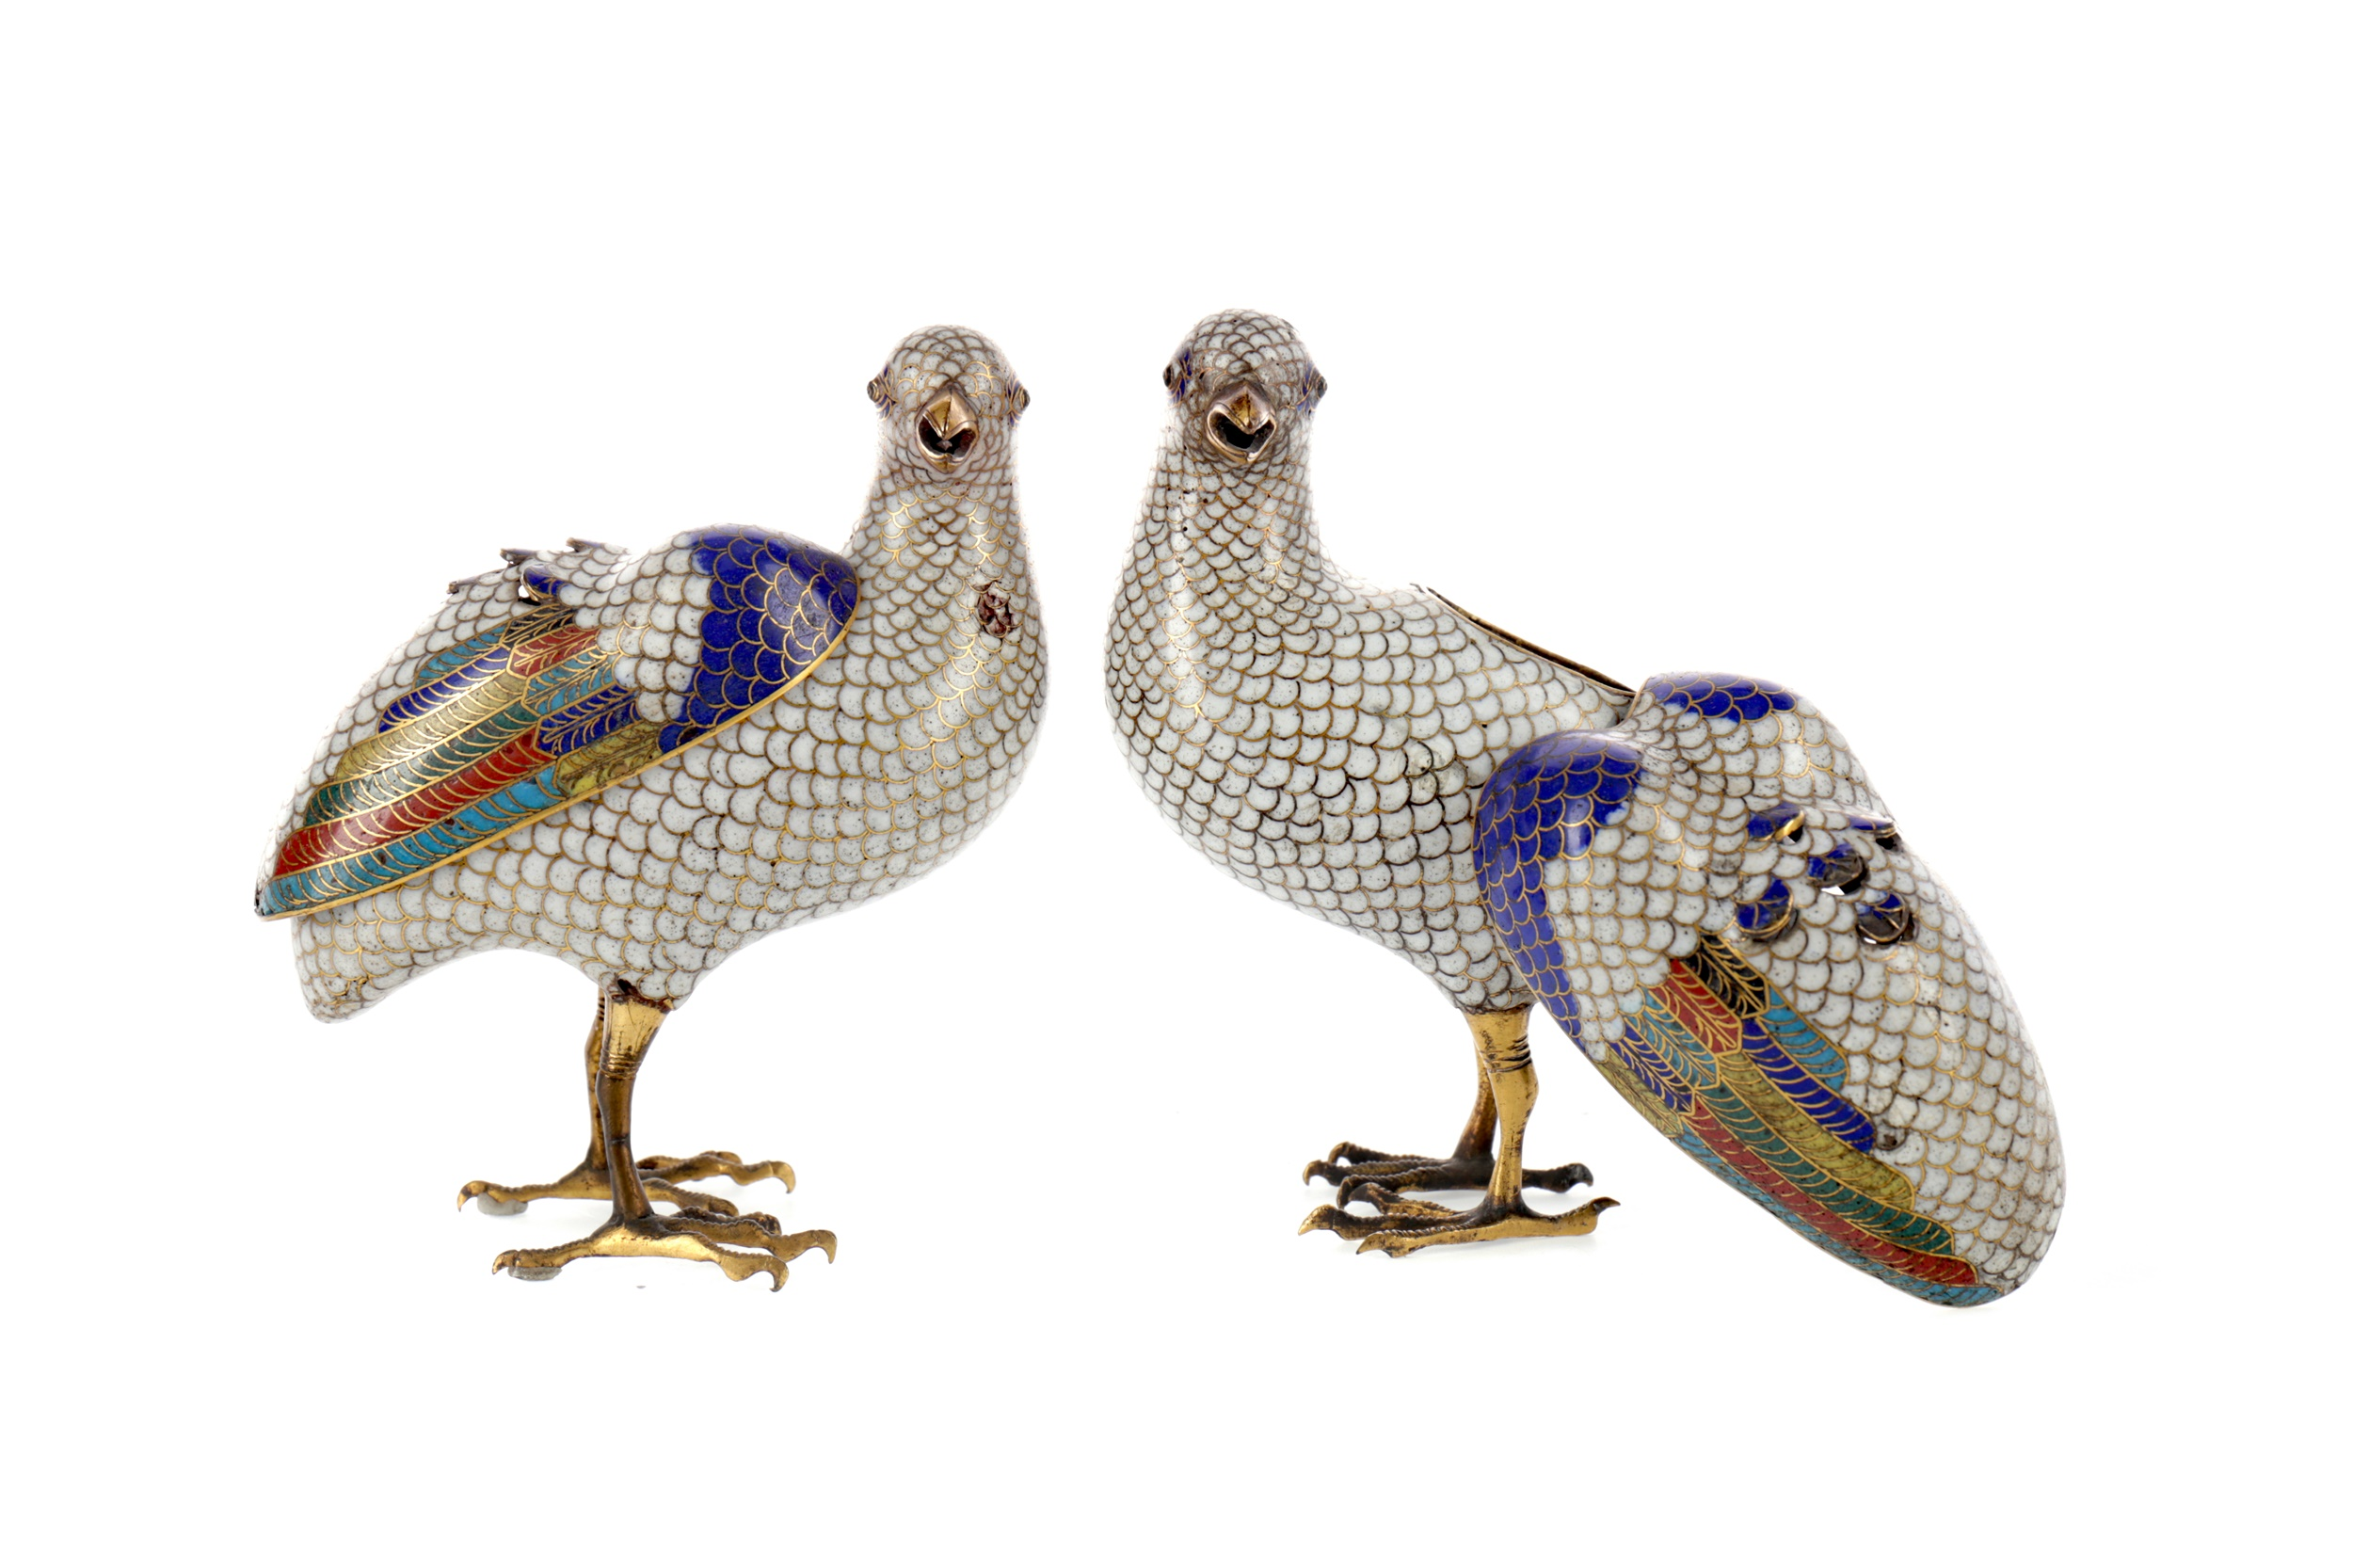 A PAIR OF LATE 19TH CENTURY CHINESE CLOISONNÉ INCENSE BURNERS